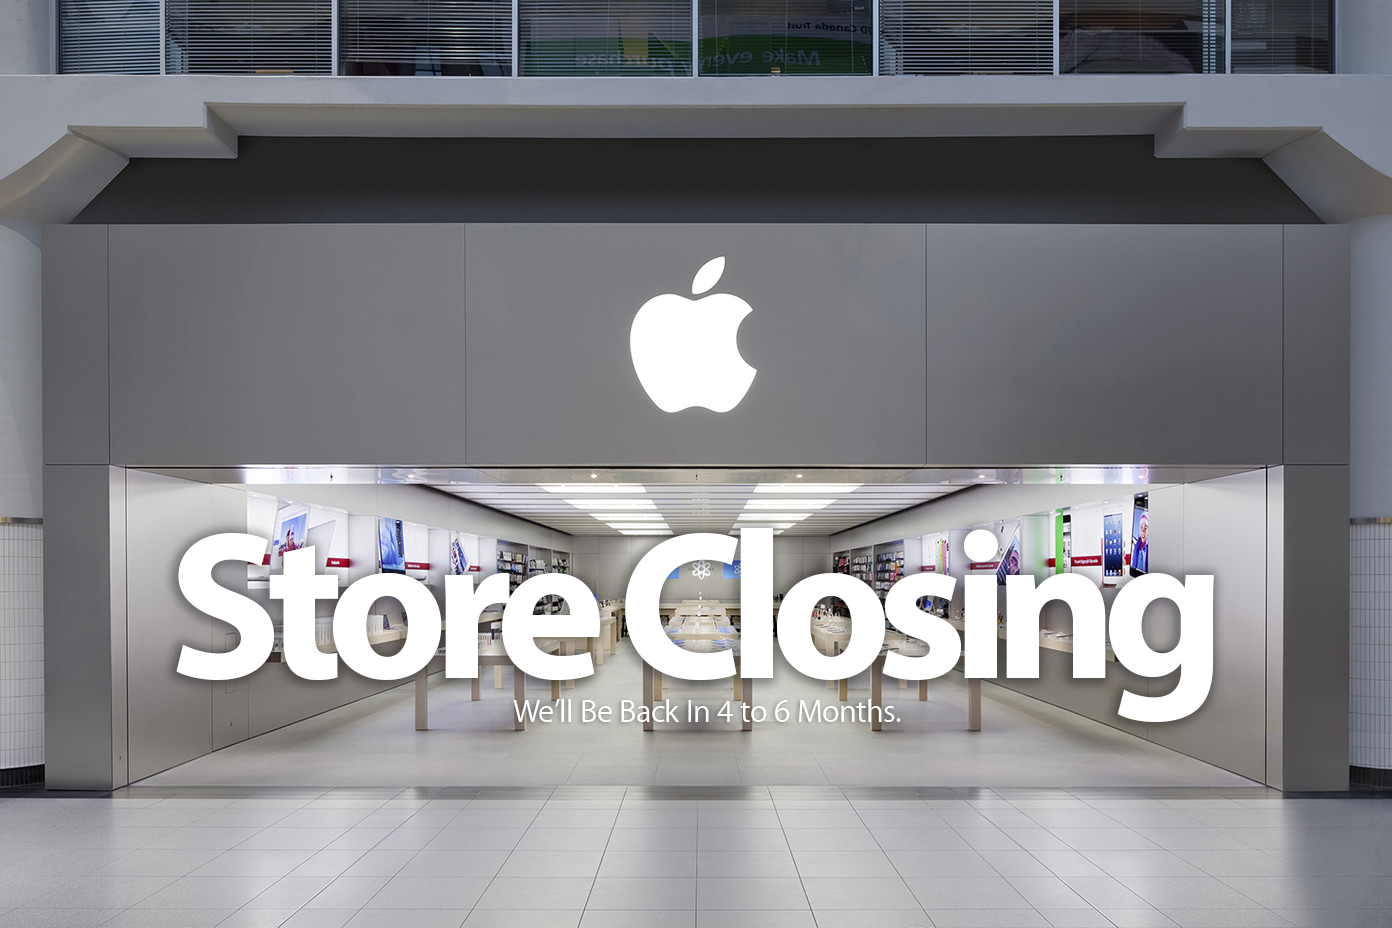 Apple-Store-Closing-Pakm-Beach-Gardens-Mall - Ubermac com